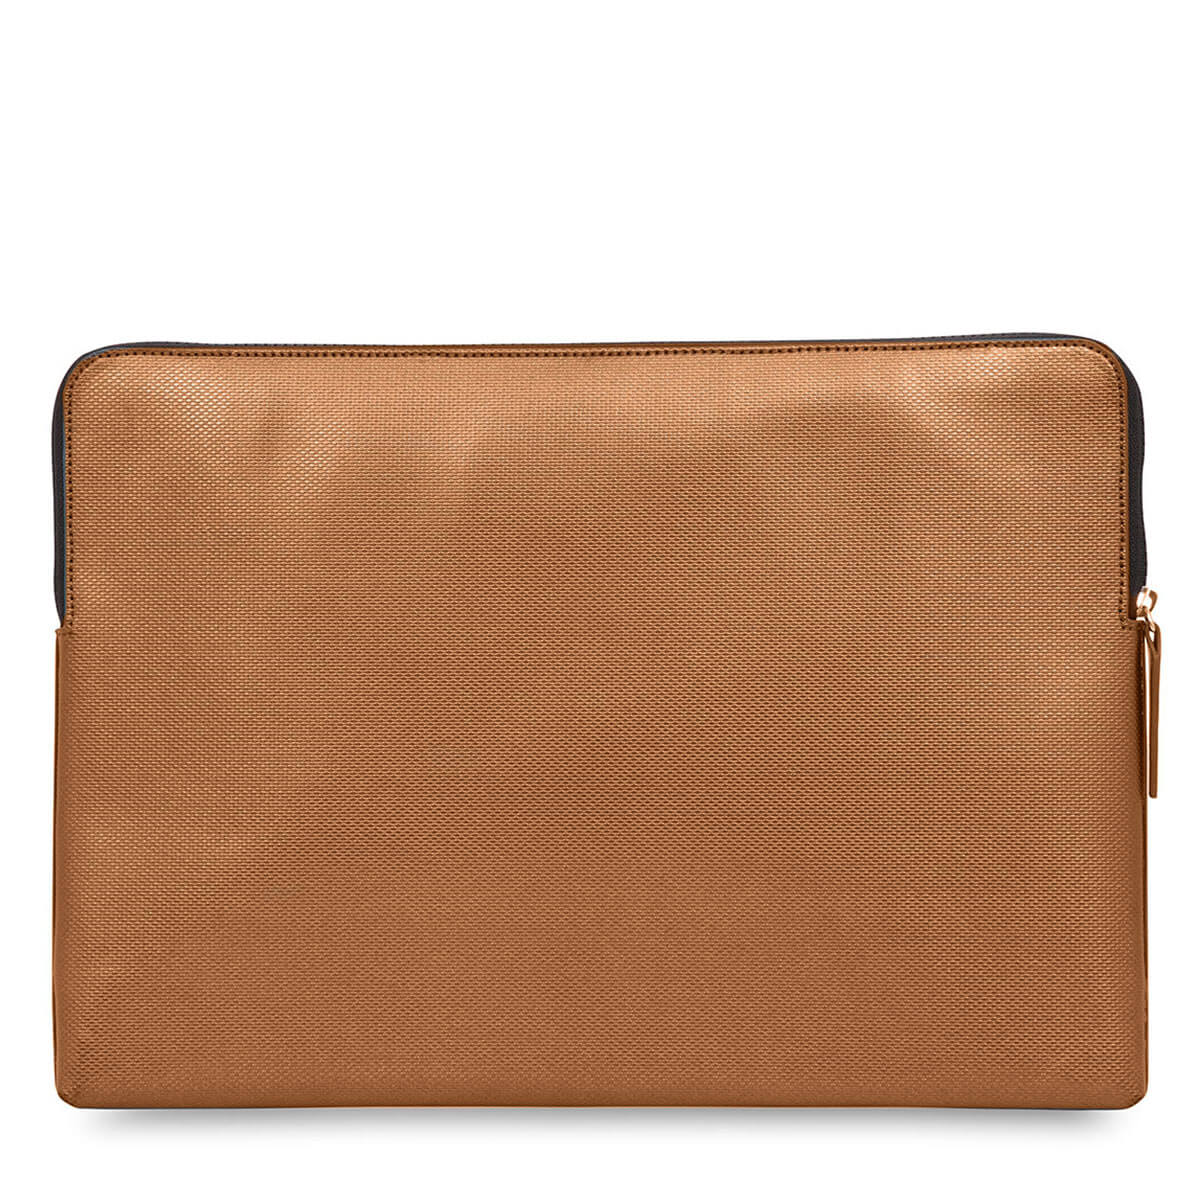 "Embossed Laptop Sleeve 15 inch Embossed Laptop Sleeve - 15"" -  Bronze 